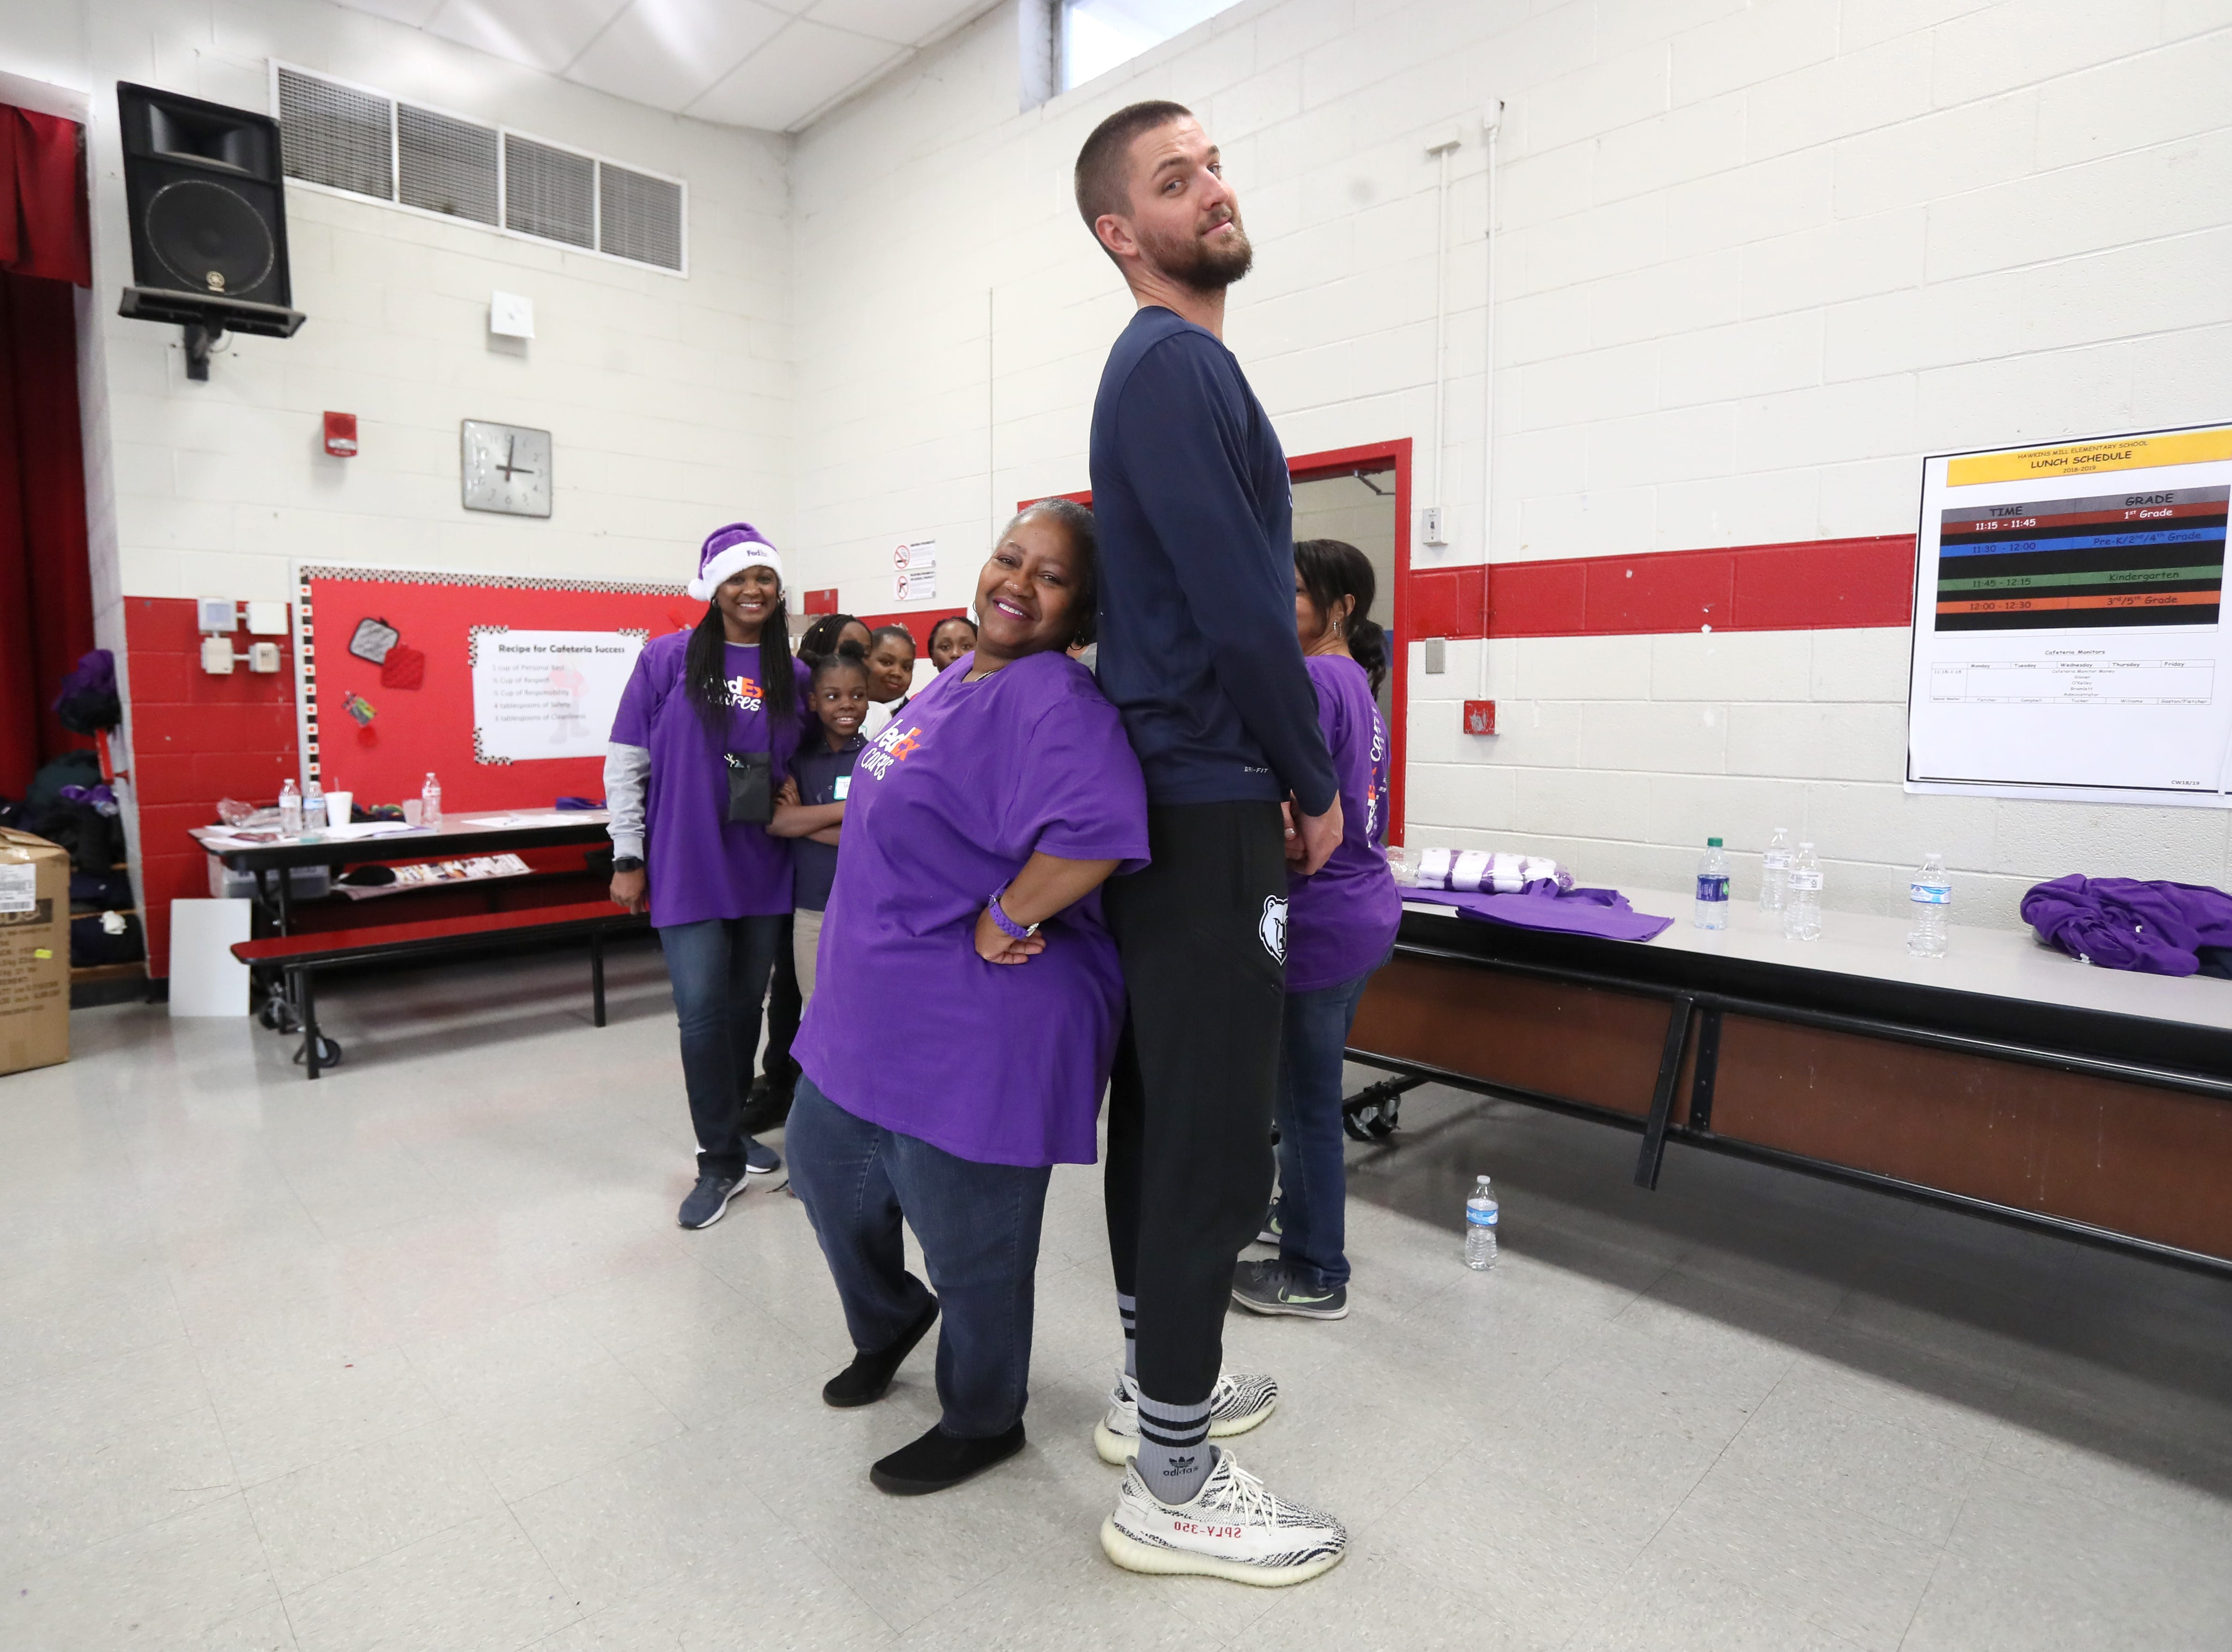 FedEx employee Beverly Goines measures up against Chandler Parsons as they join Operation Warm to surprise children with new coats at Hawkins Mill Elementary School on Thursday, Nov. 8, 2018.